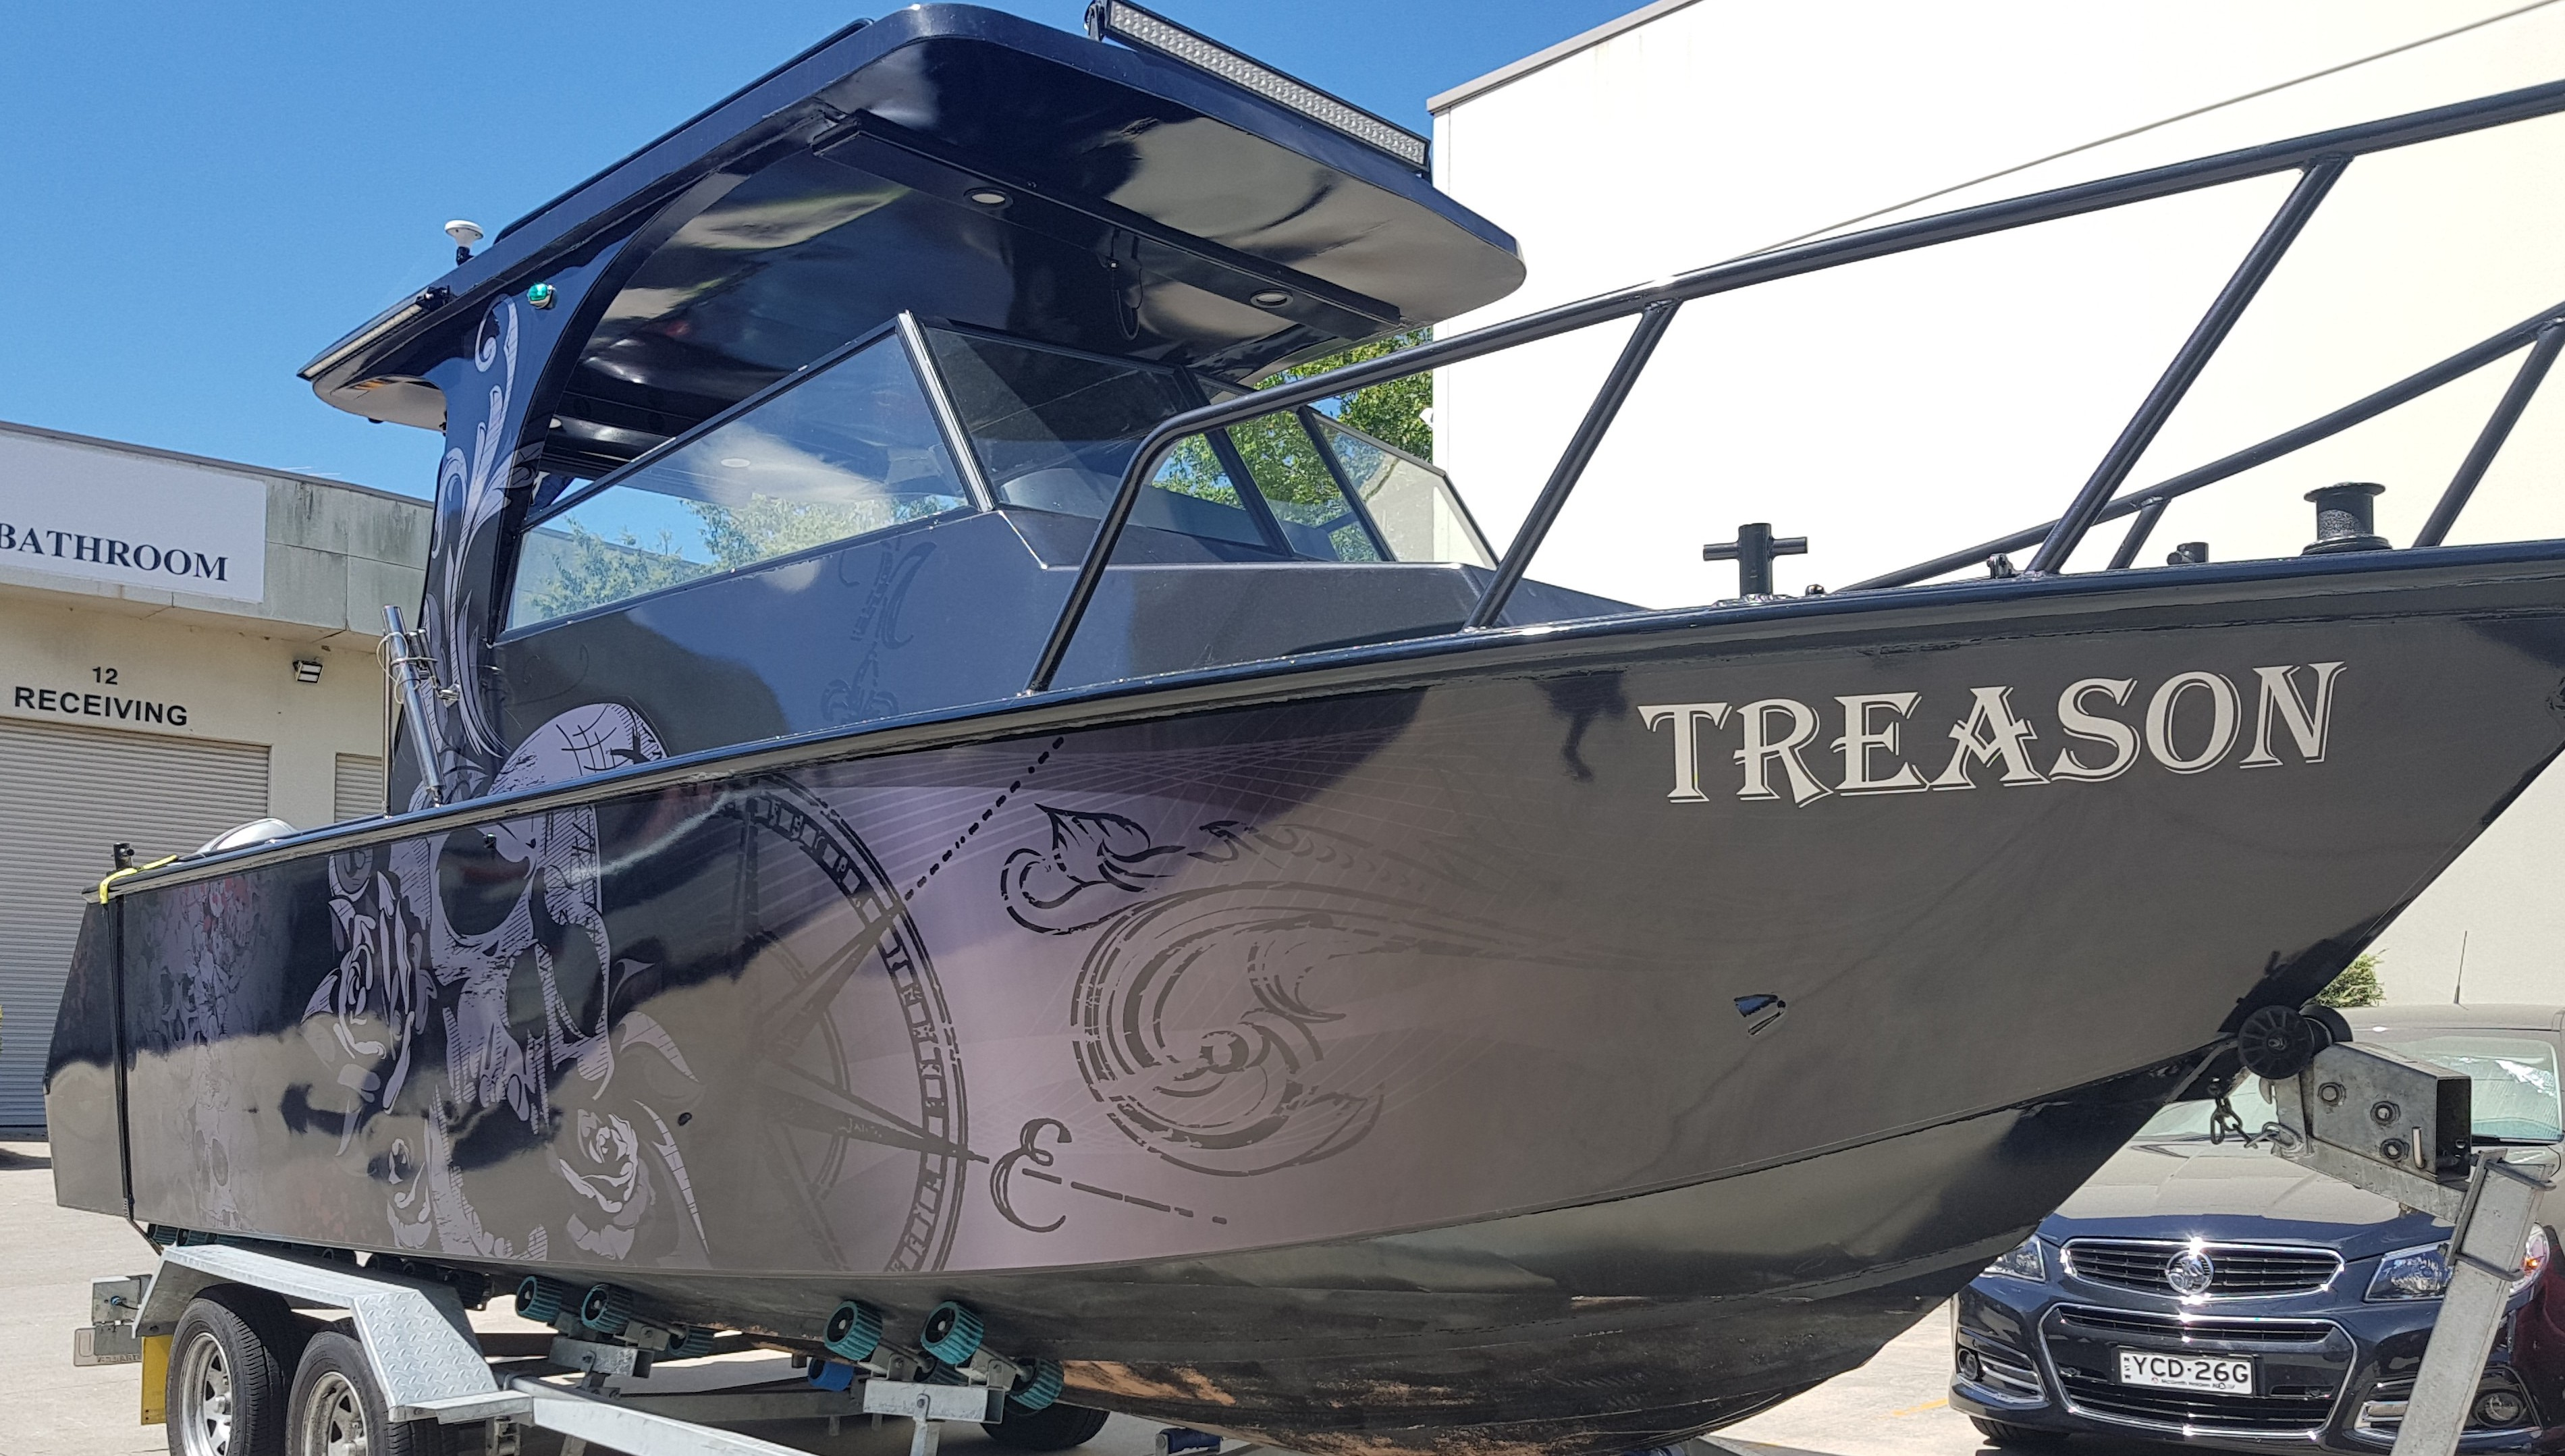 Boat Graphic – 3M Metallic, Day of the Dead theme